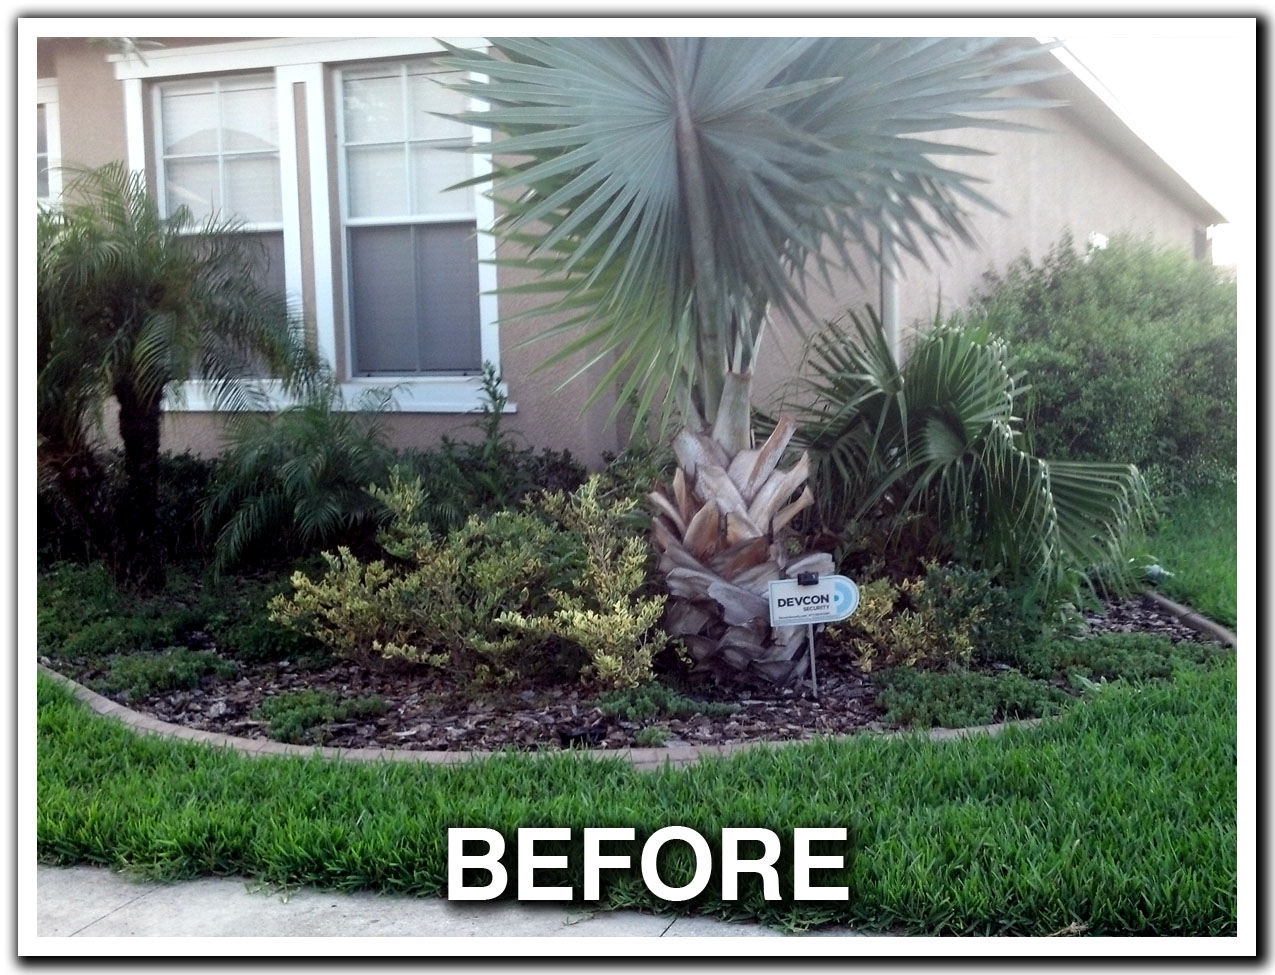 LANDSCAPING, LAWN CARE, MAINTENANCE, BUSH HOG, BUSH HOGGING, TRACTOR WORK, SERVICE, MOWING, MOW, LANDSCAPE LIGHTING,SOD, SOD INSTALLATION, SODDING SERVICES,  LUTZ, ODESSA, LAND O LAKES, WESLEY CHAPEL, NEW TAMPA, COMMERCIAL, RESIDENTIAL, FLORIDA, FL